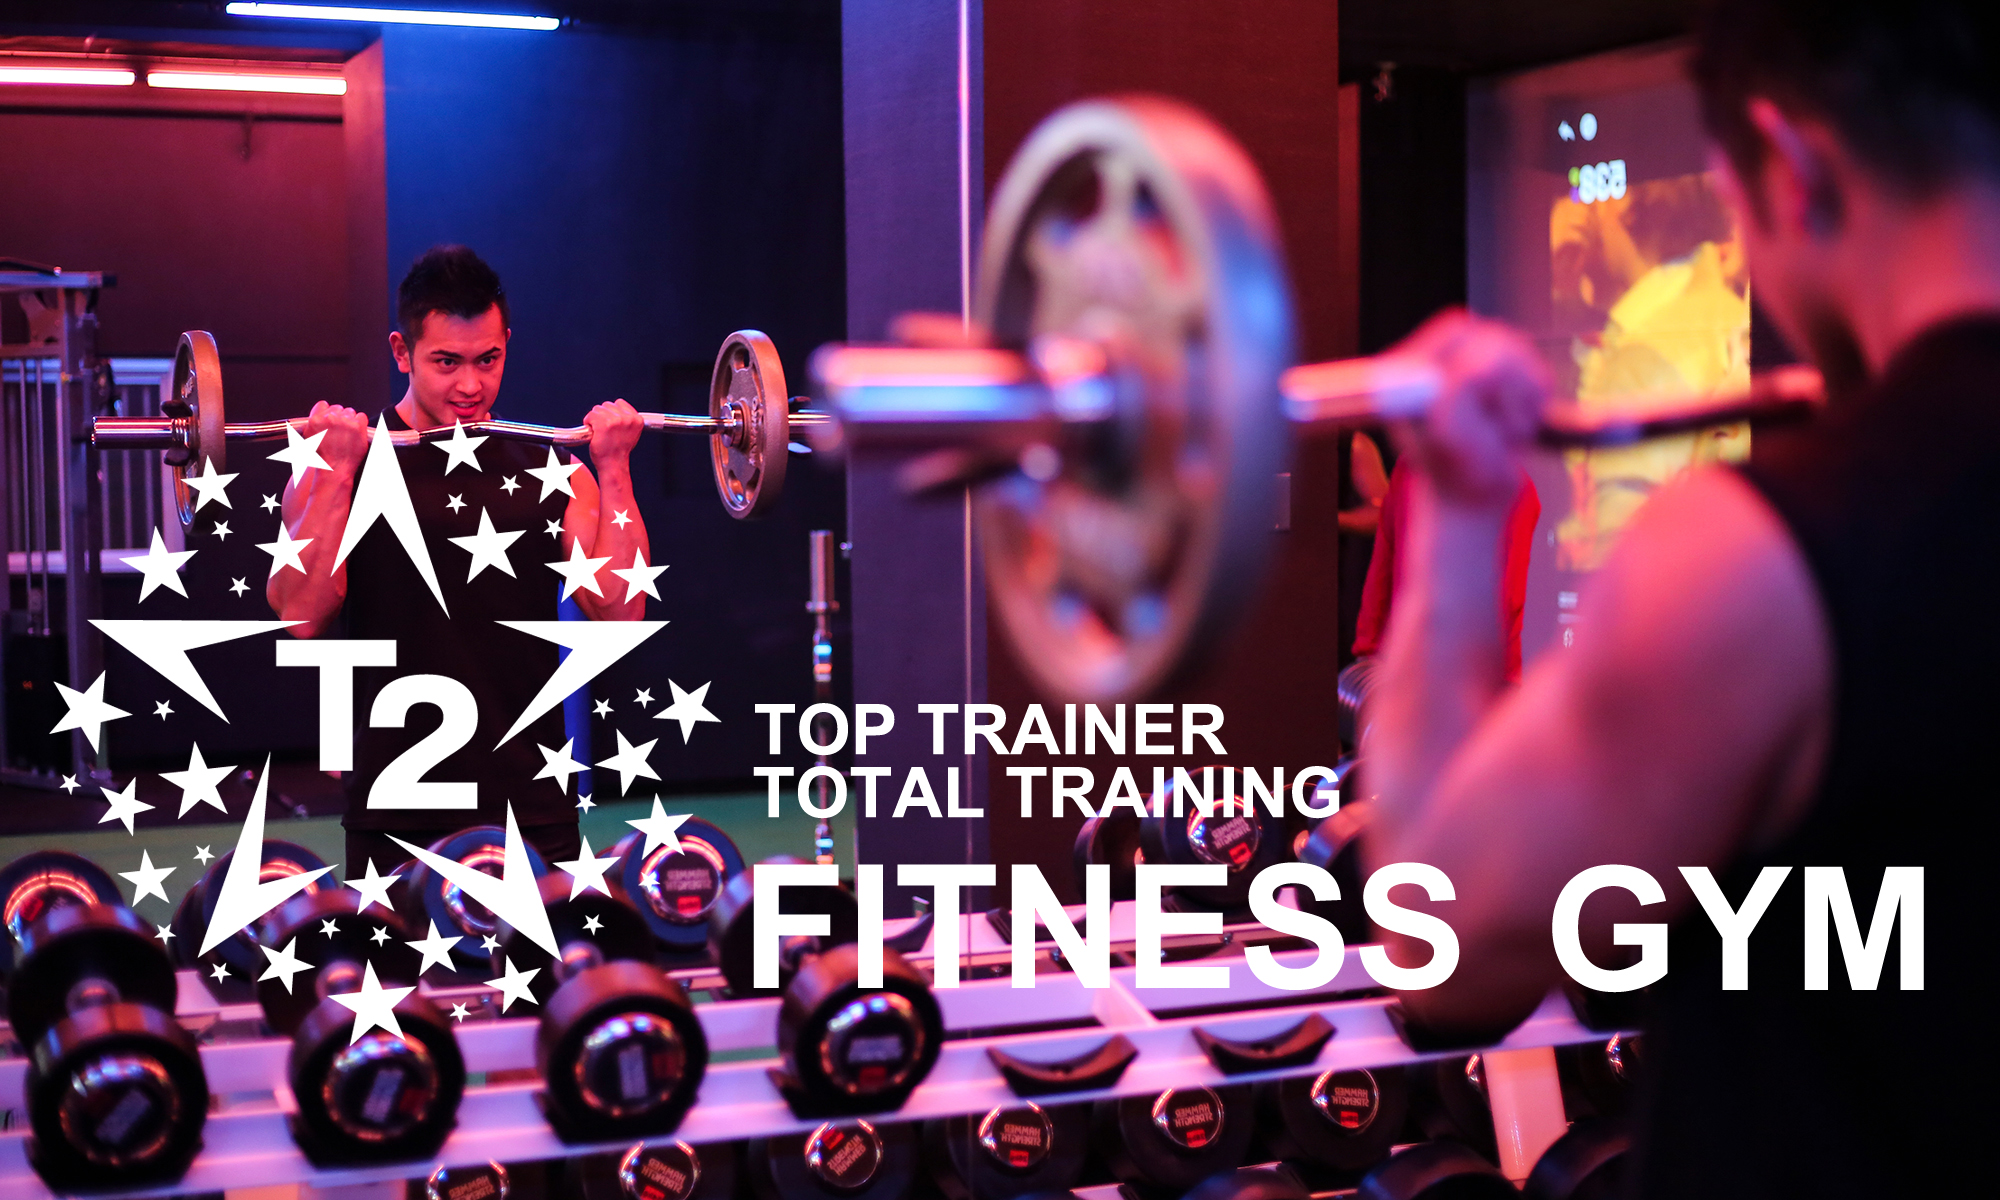 T2 FITNESS GYM